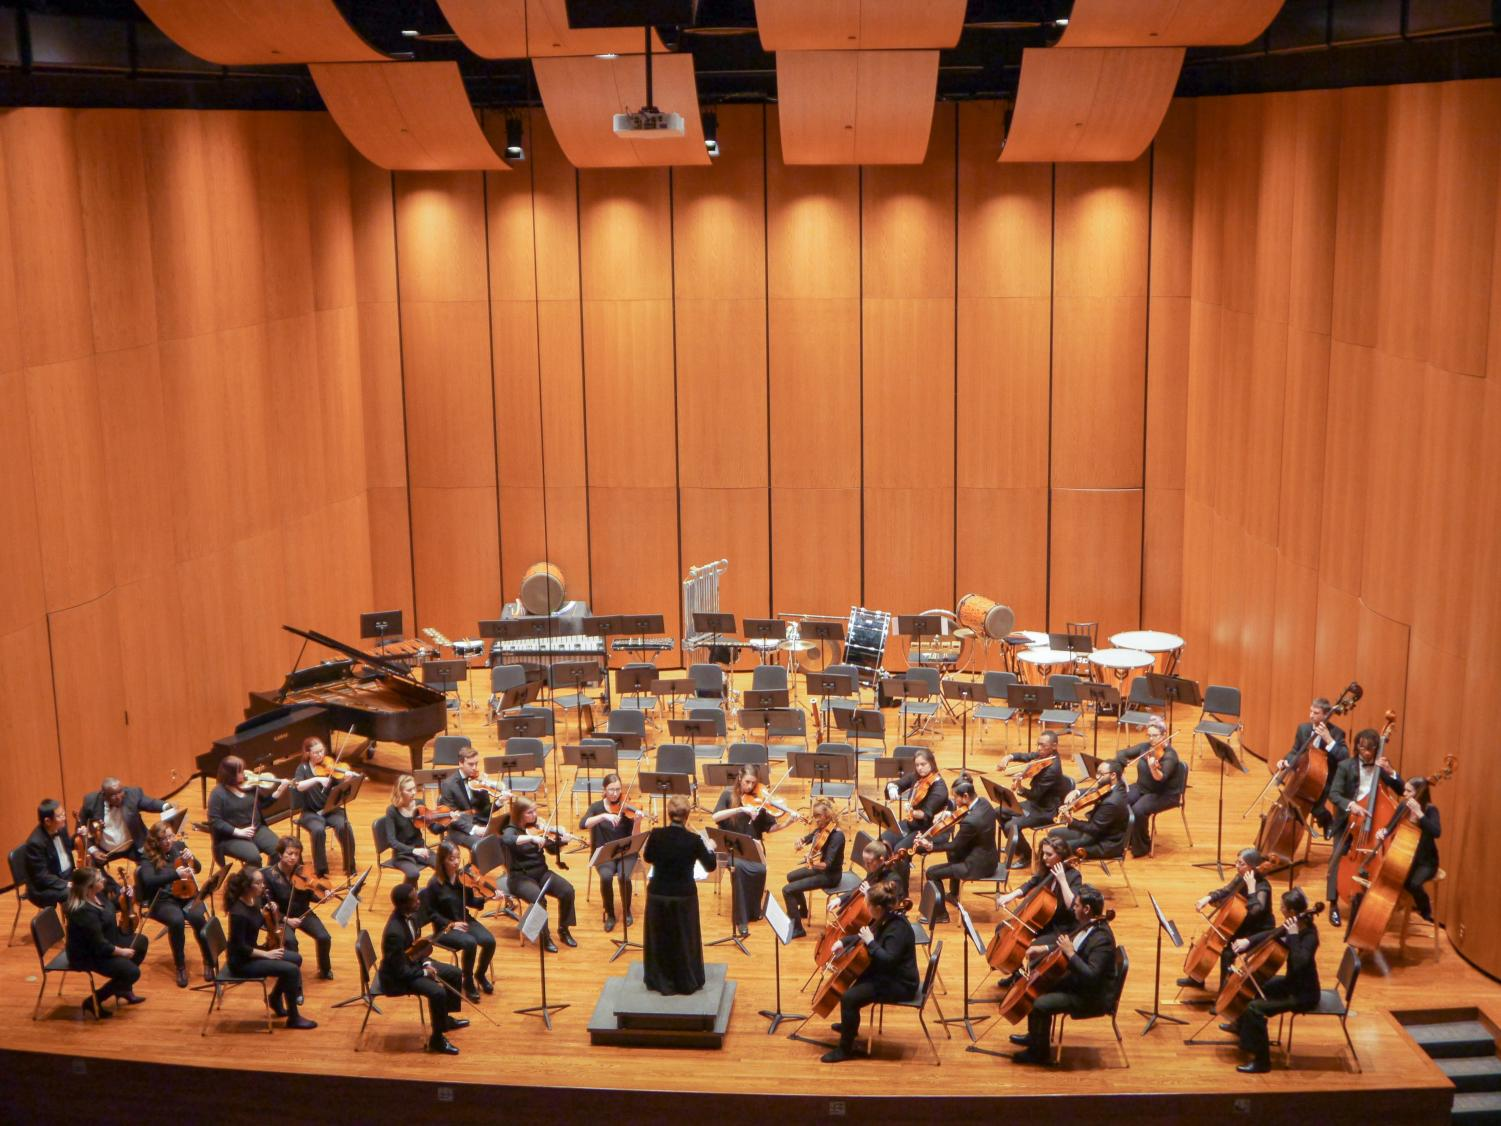 Violinists and cello players performing during Hot Off The Press! which took place March 6 at Terry Concert Hall.